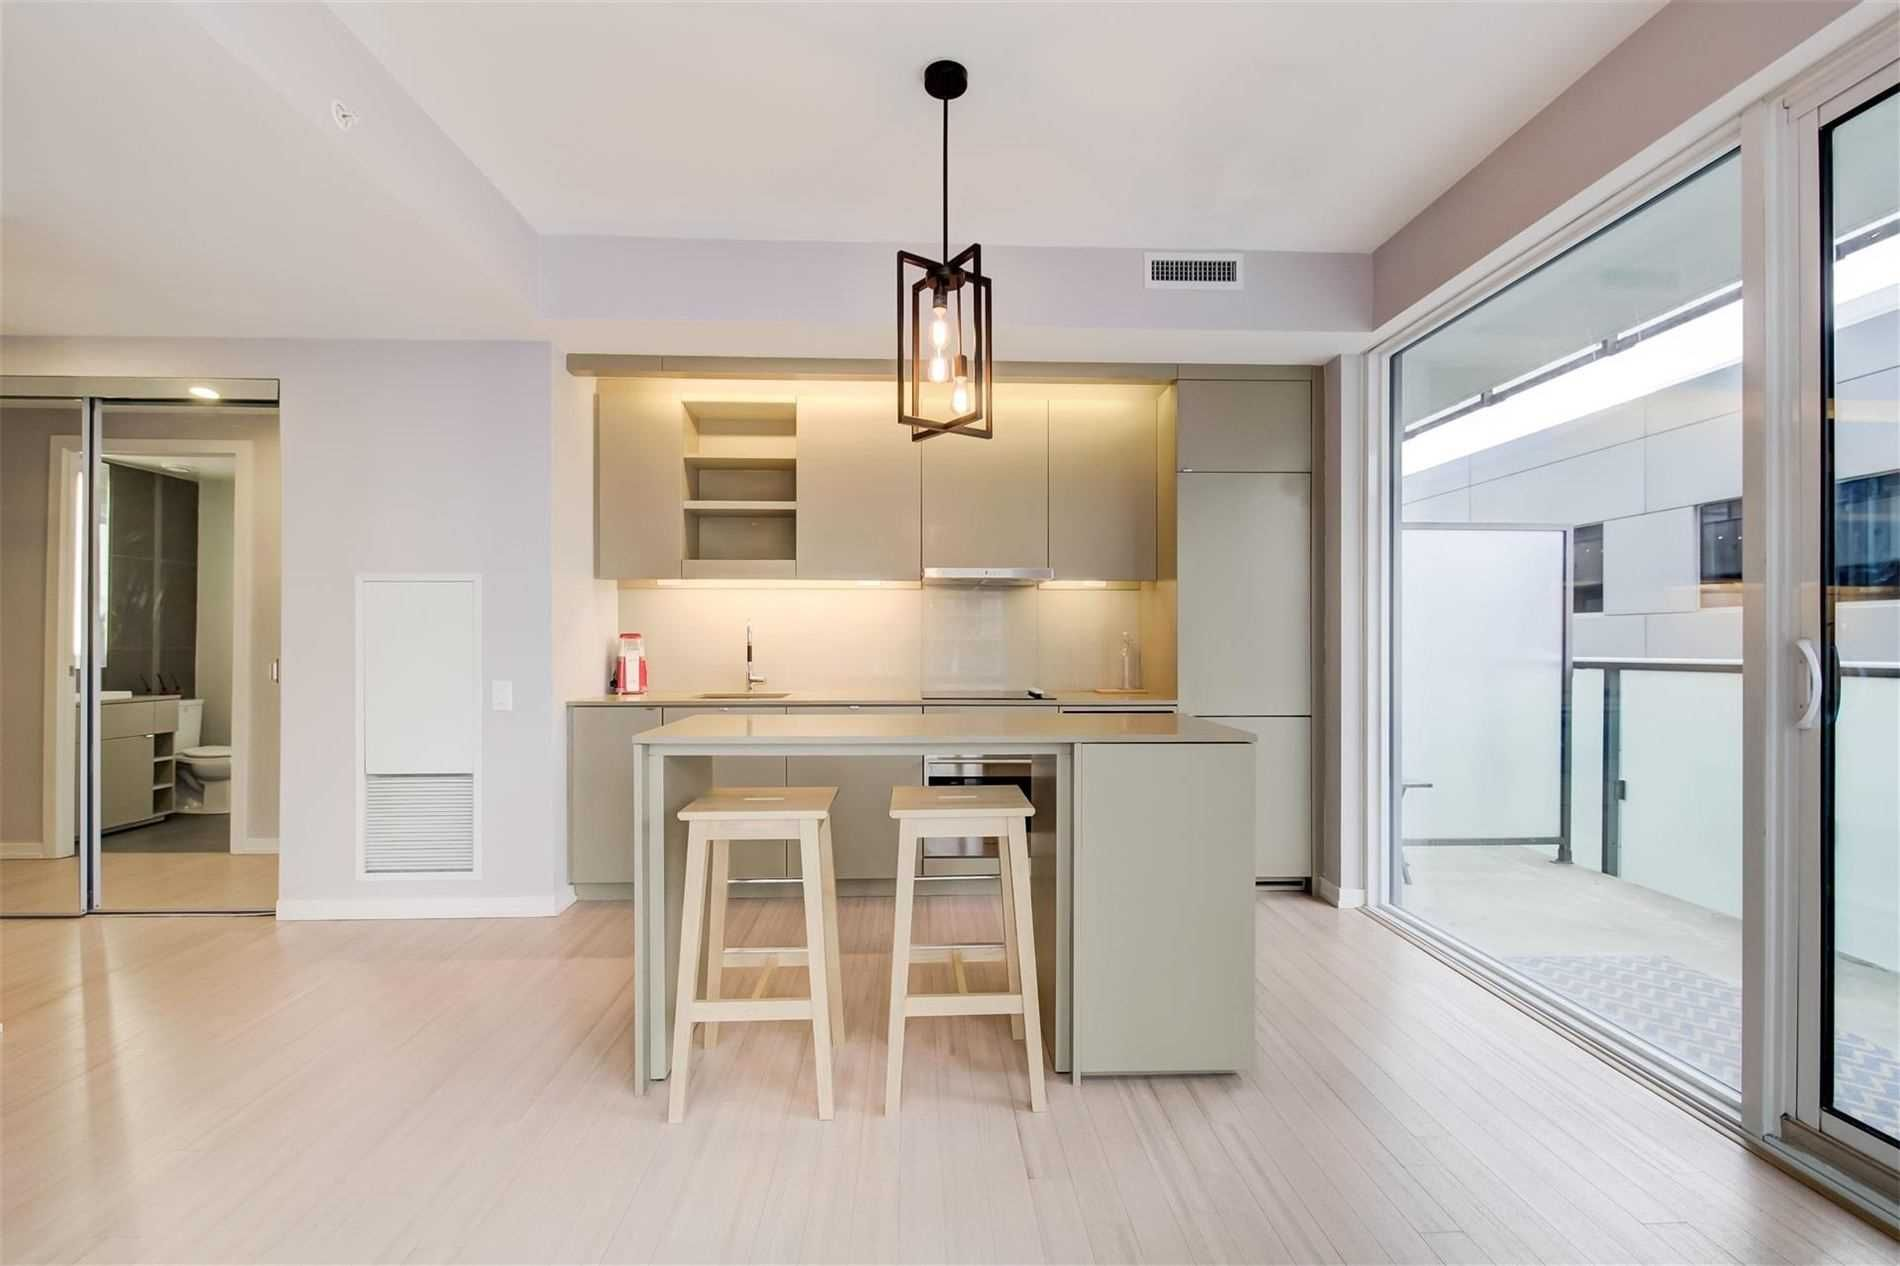 101 Peter St, unit 903 for rent in Toronto - image #2